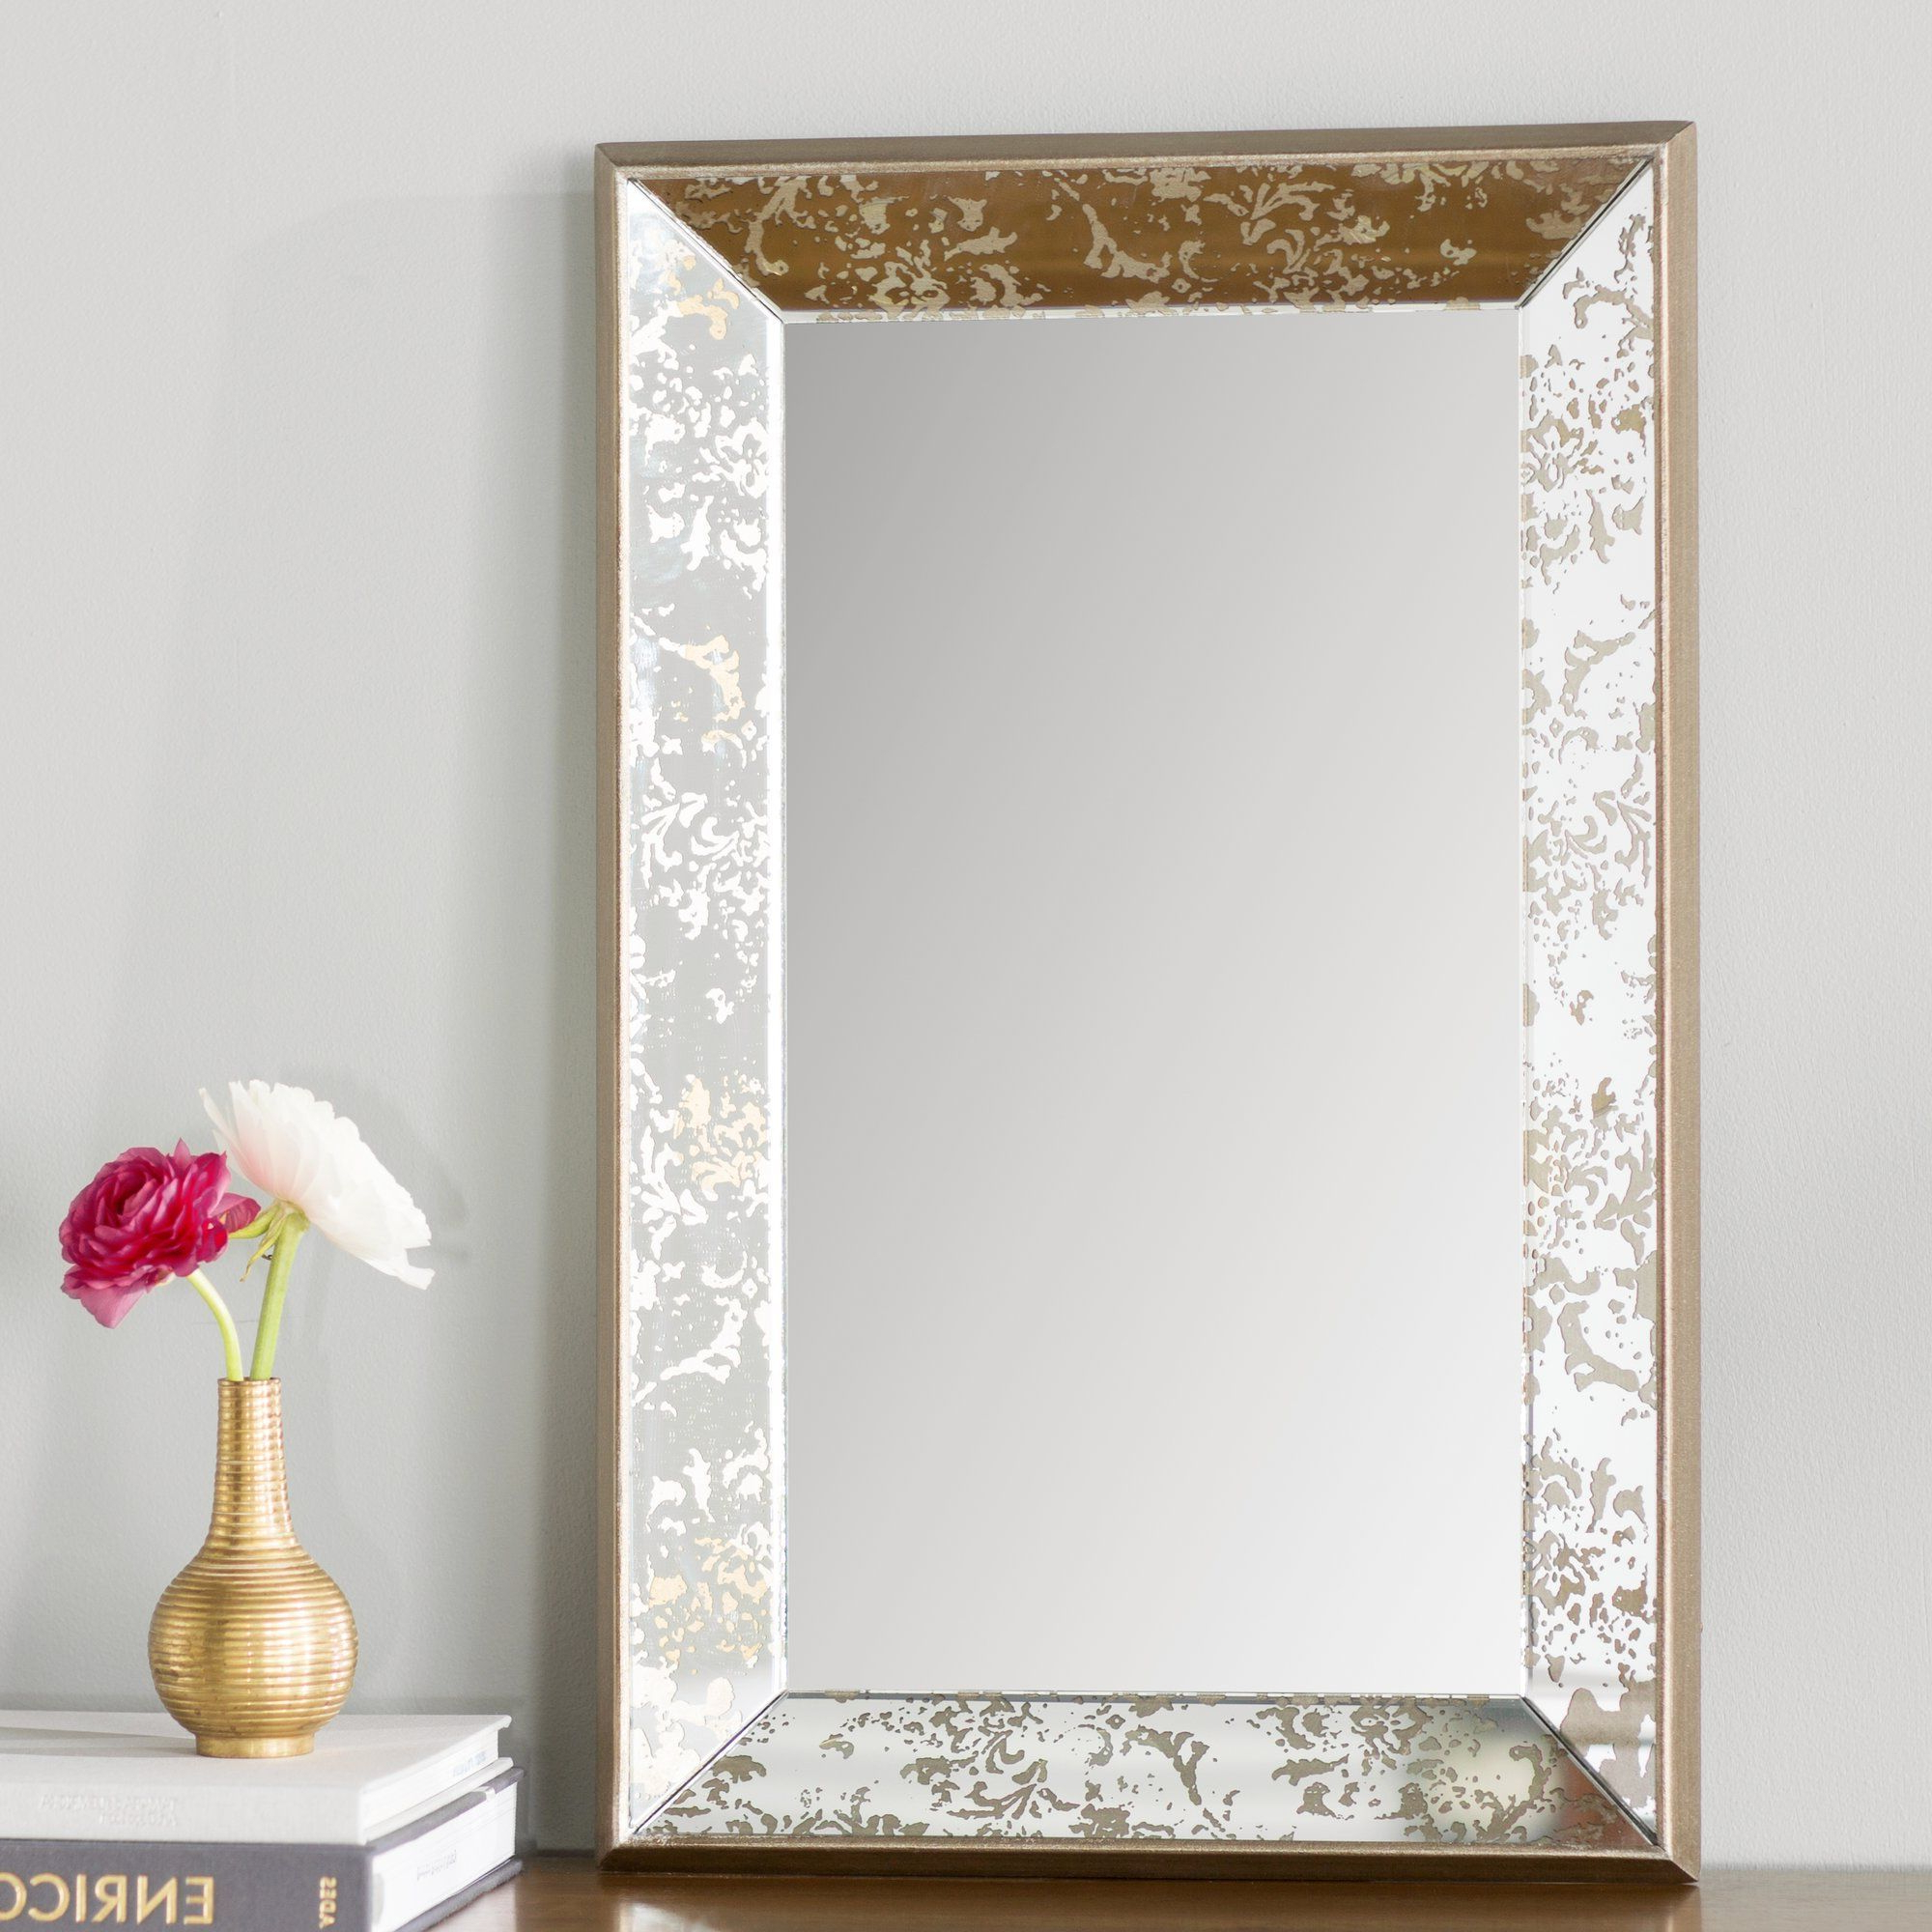 Popular 4 Fantastic Ideas: Long Wall Mirror Frames Oval Wall Mirror Vanities With Stamey Wall Mirrors (View 4 of 20)